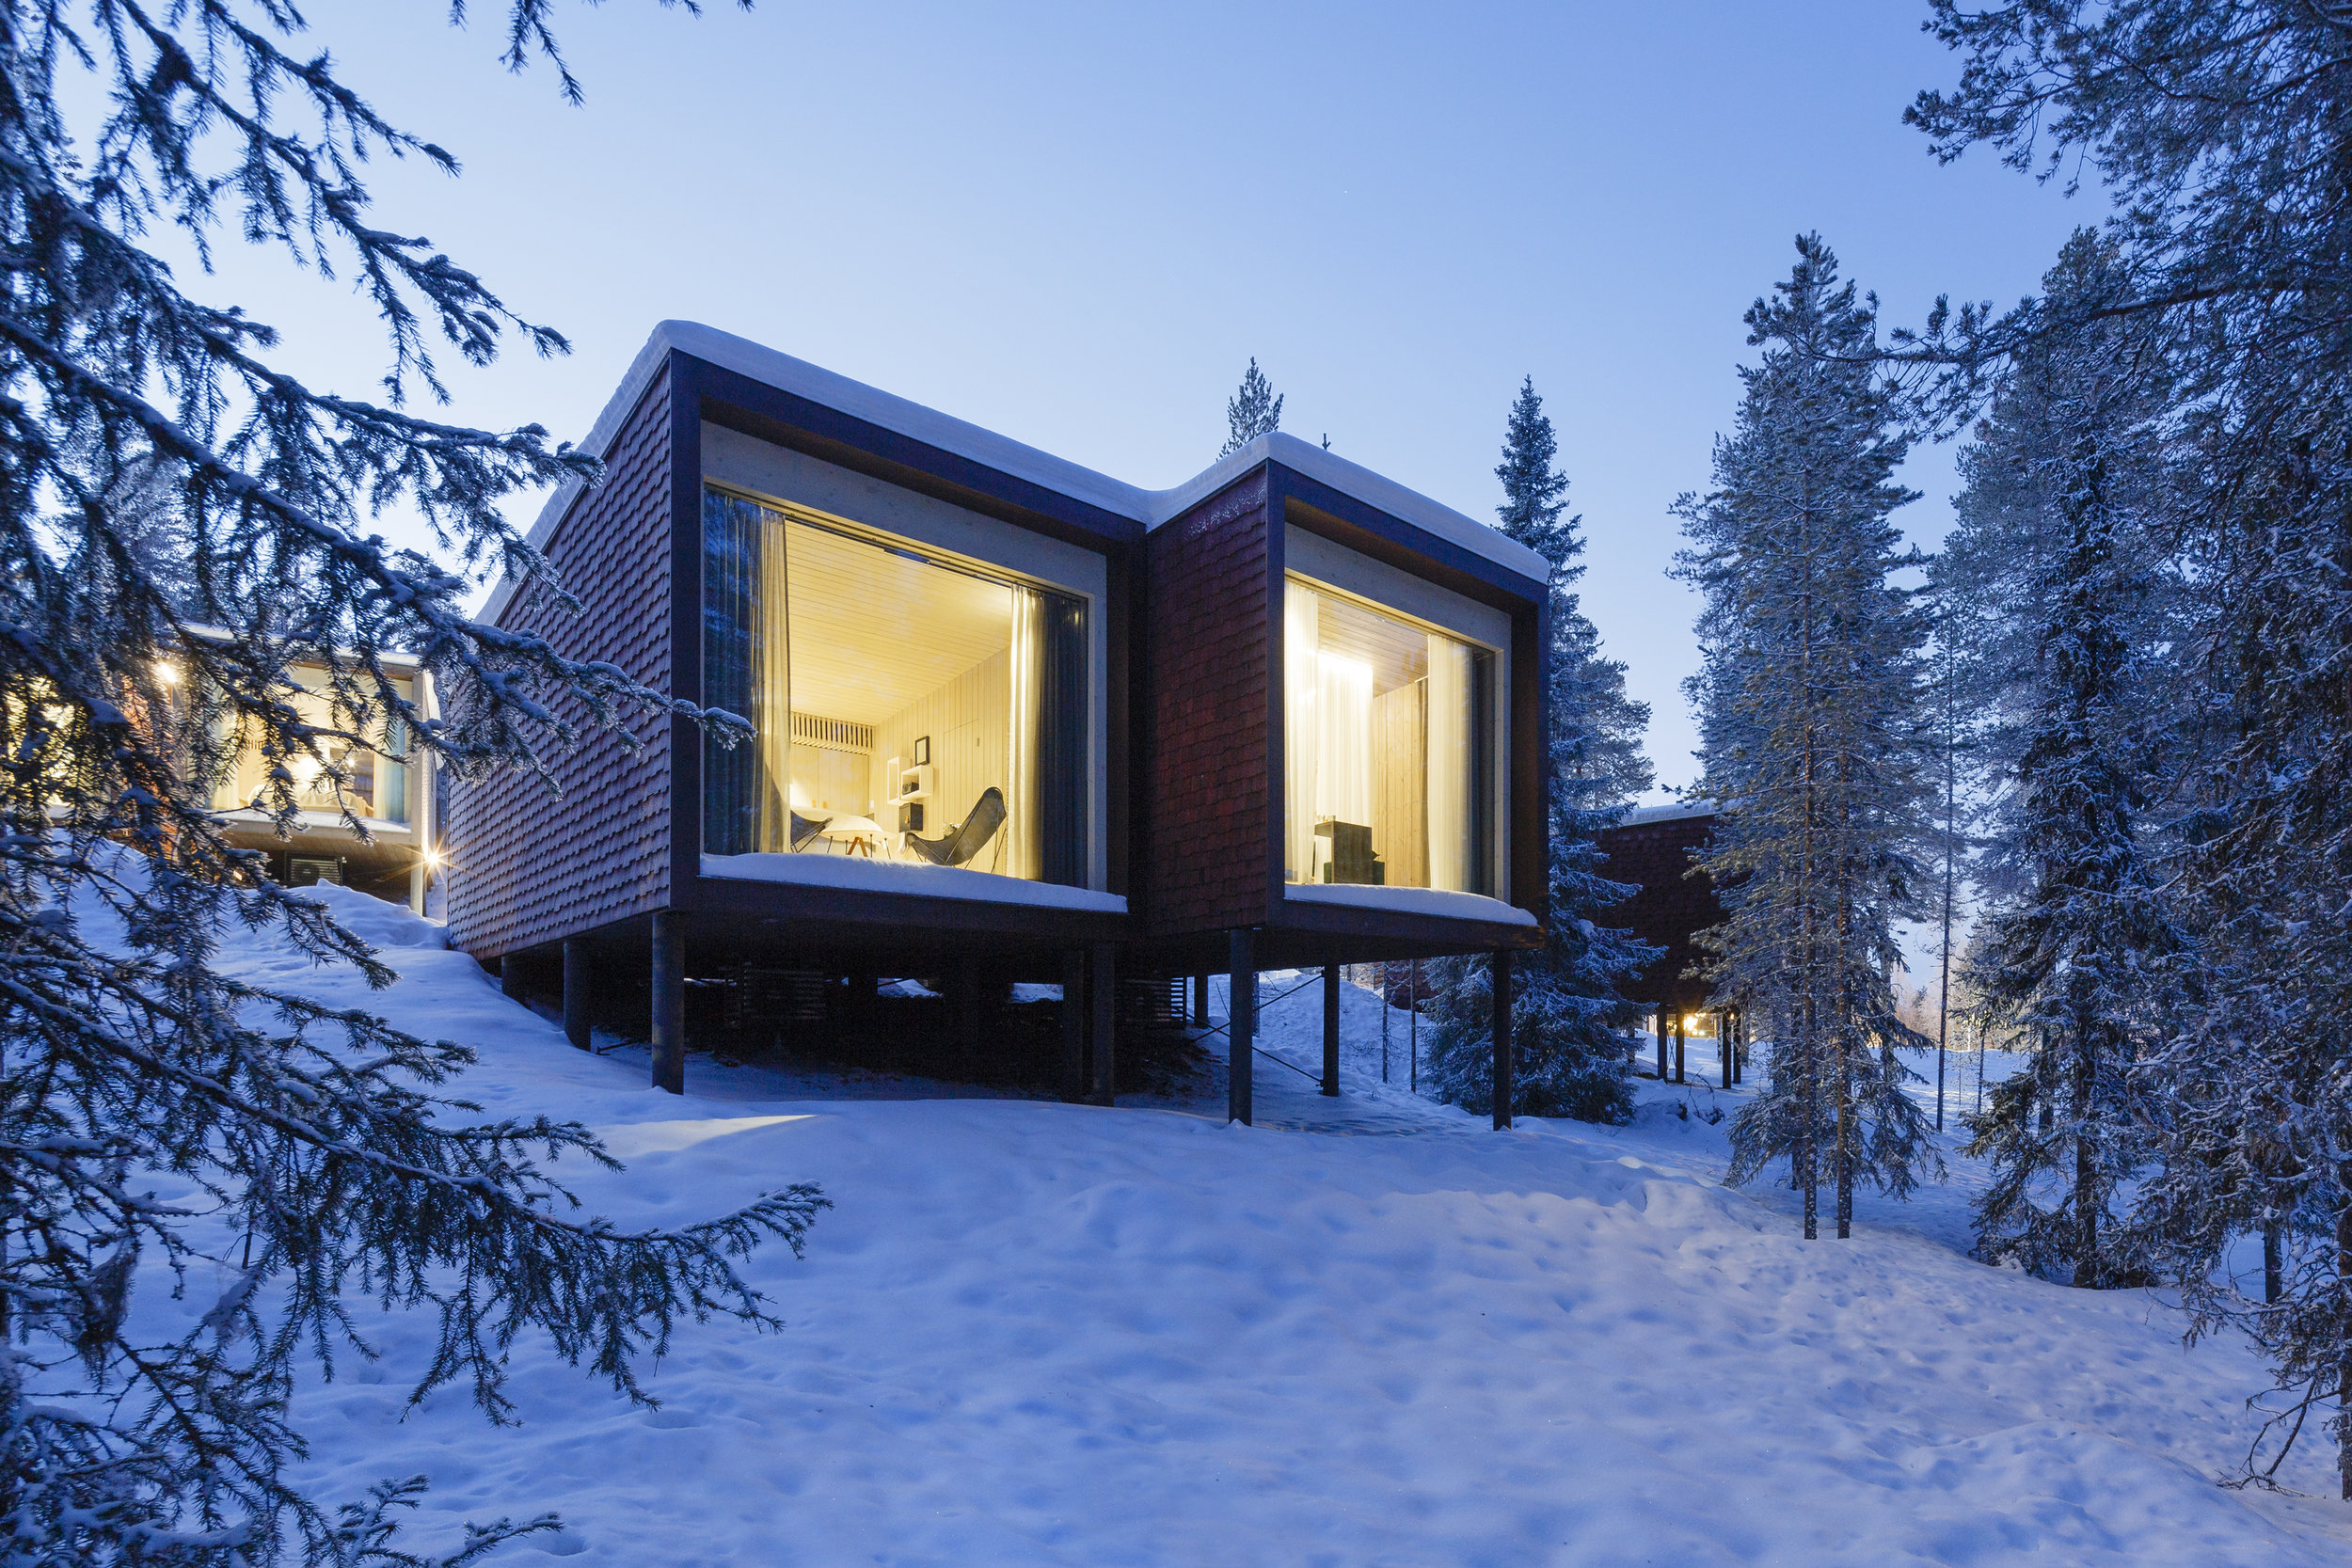 Arctic Treehouse Hotel by Studio Puisto Architects. Photo: Marc Goodwin.